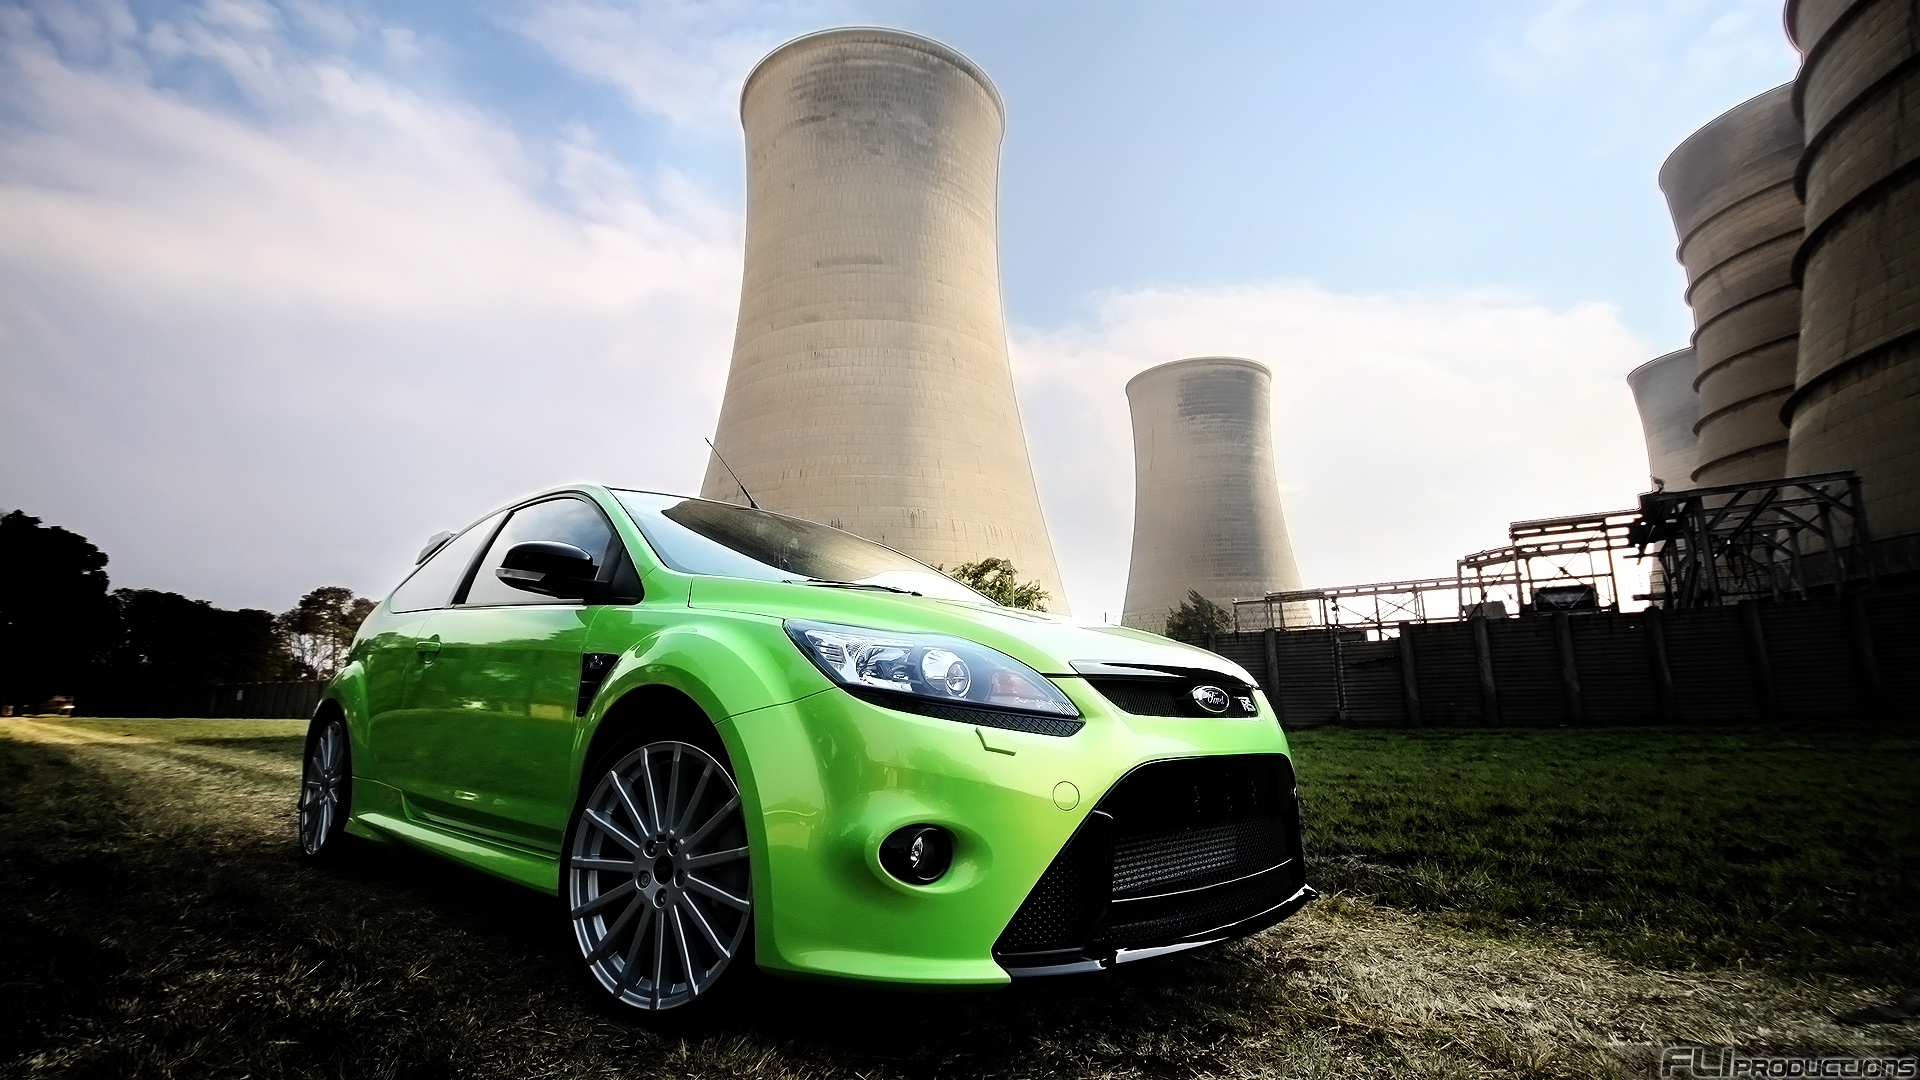 30 Ford Focus Rs Wallpapers Ford Focus Rs Wallpapers Esyllt Newis